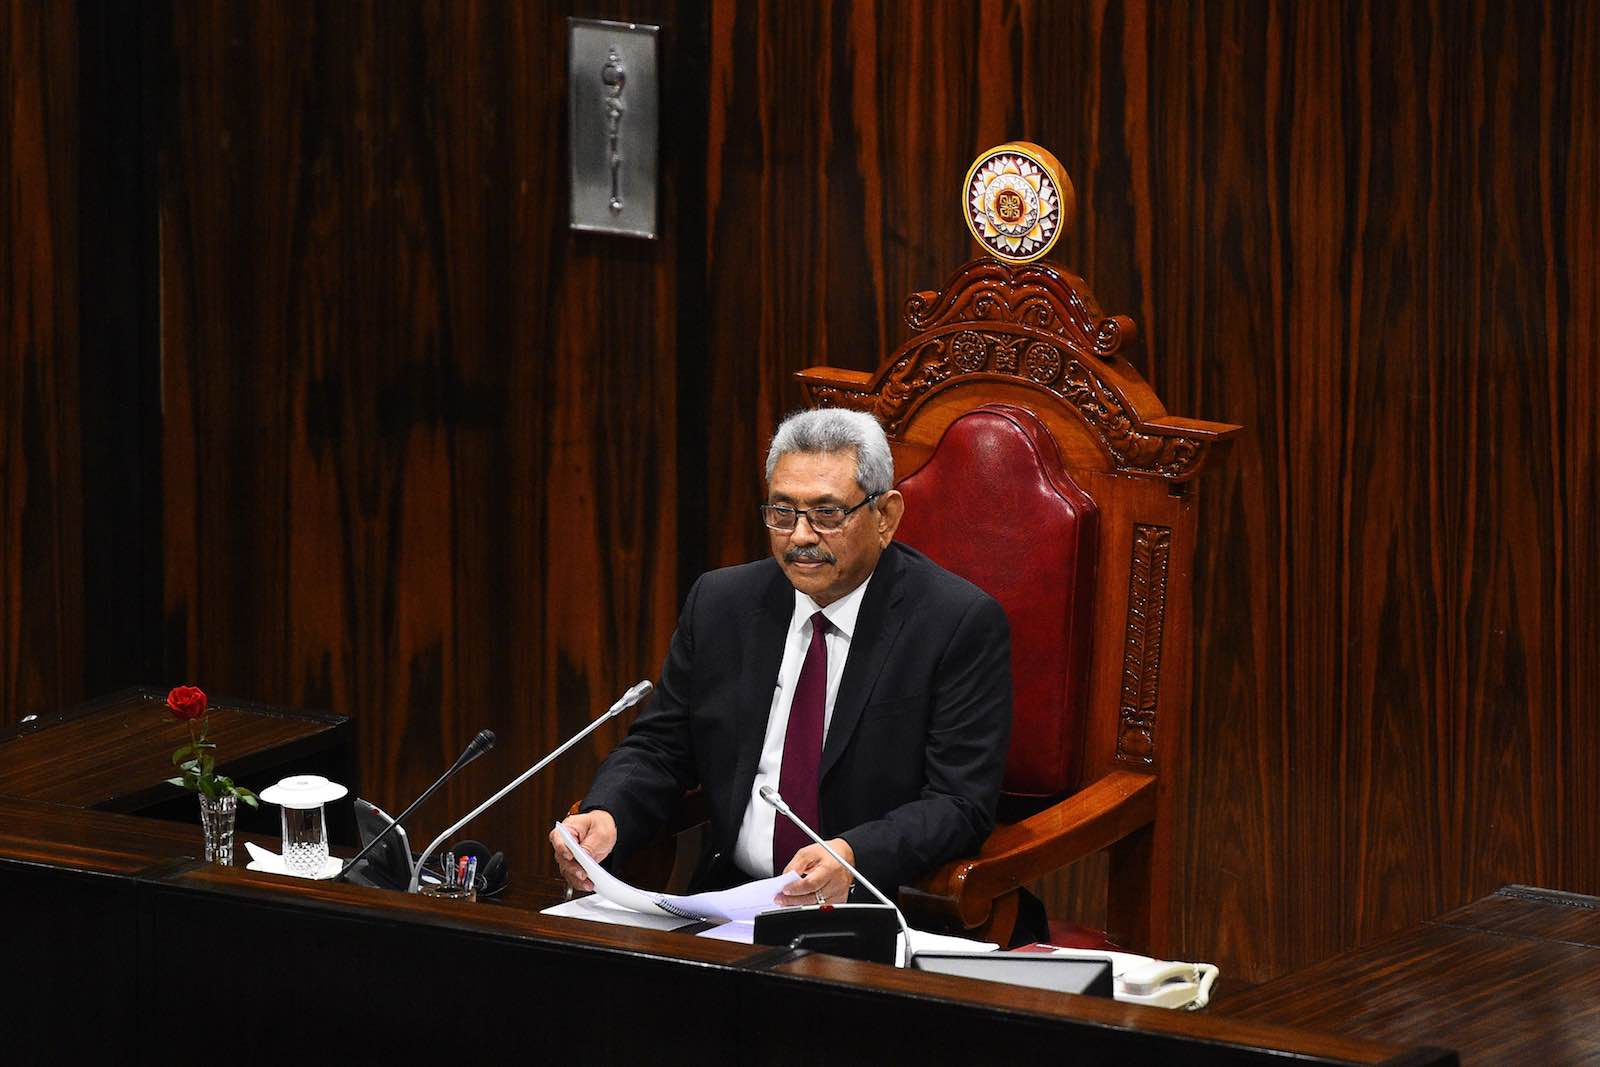 Sri Lanka's President Gotabaya Rajapaksa addresses the national parliament in Colombo (Ishara S. Kodikara/AFP via Getty Images)